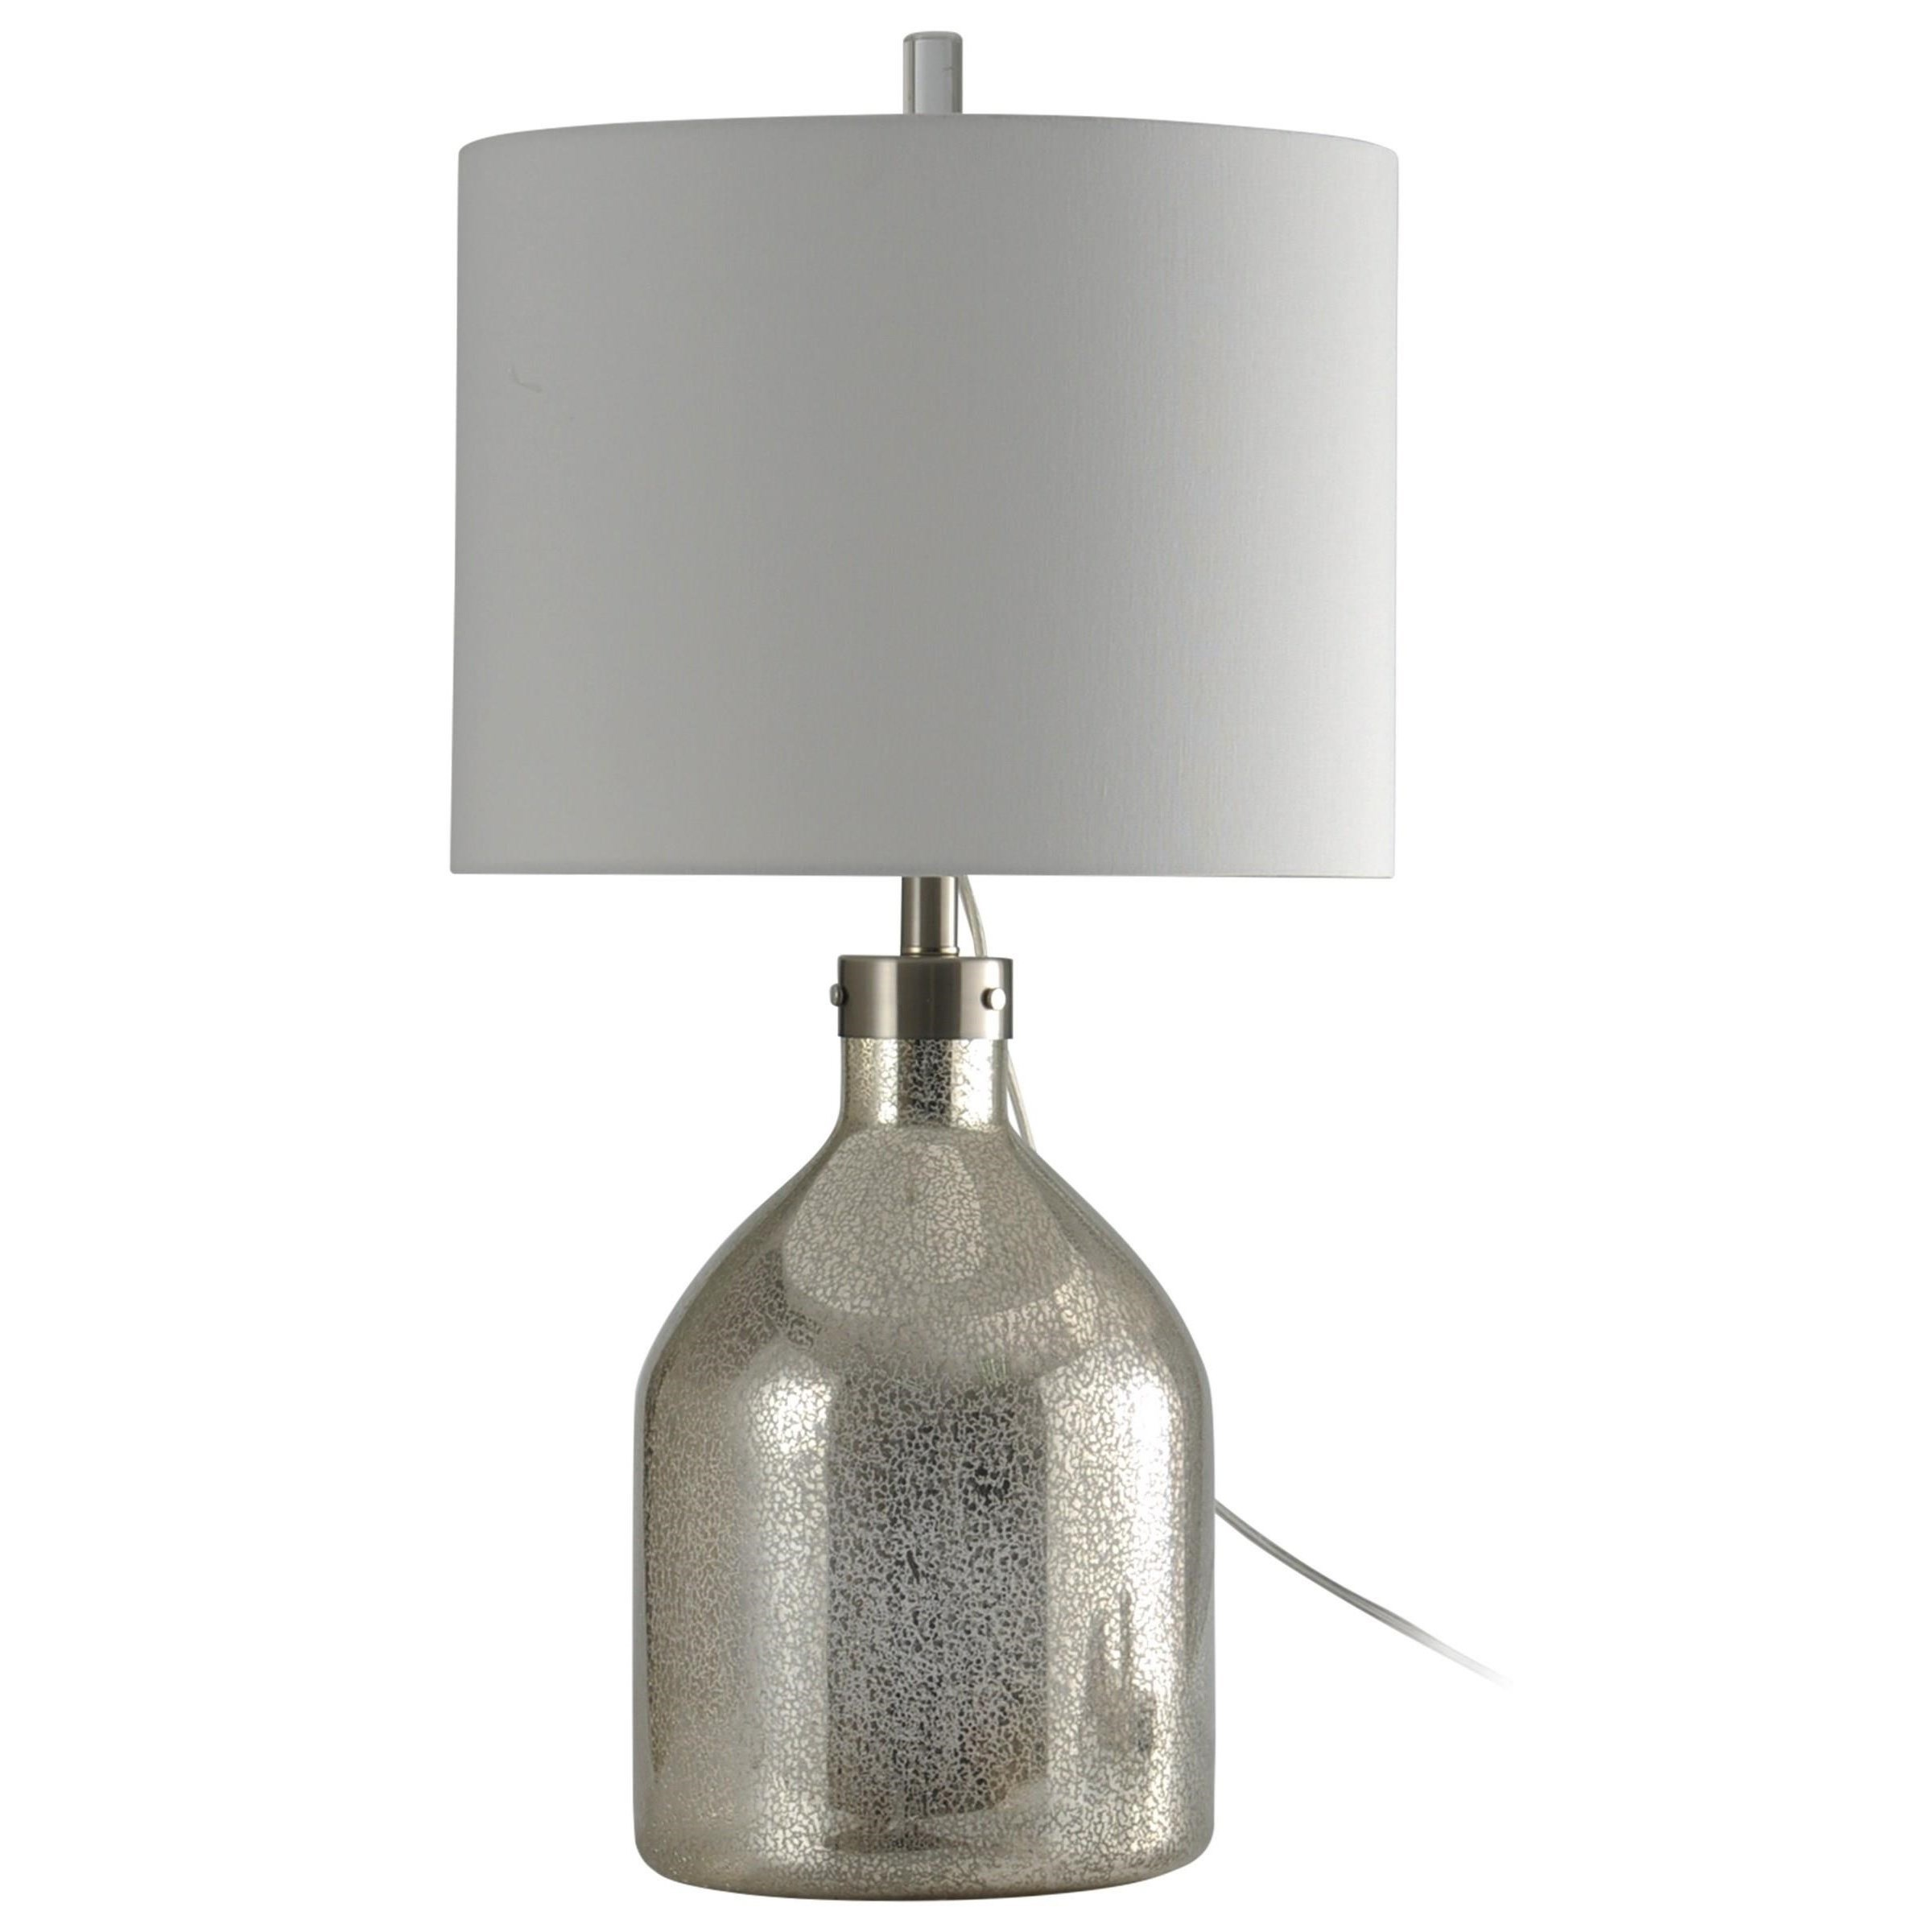 StyleCraft LampsMercury Glass Table Lamp